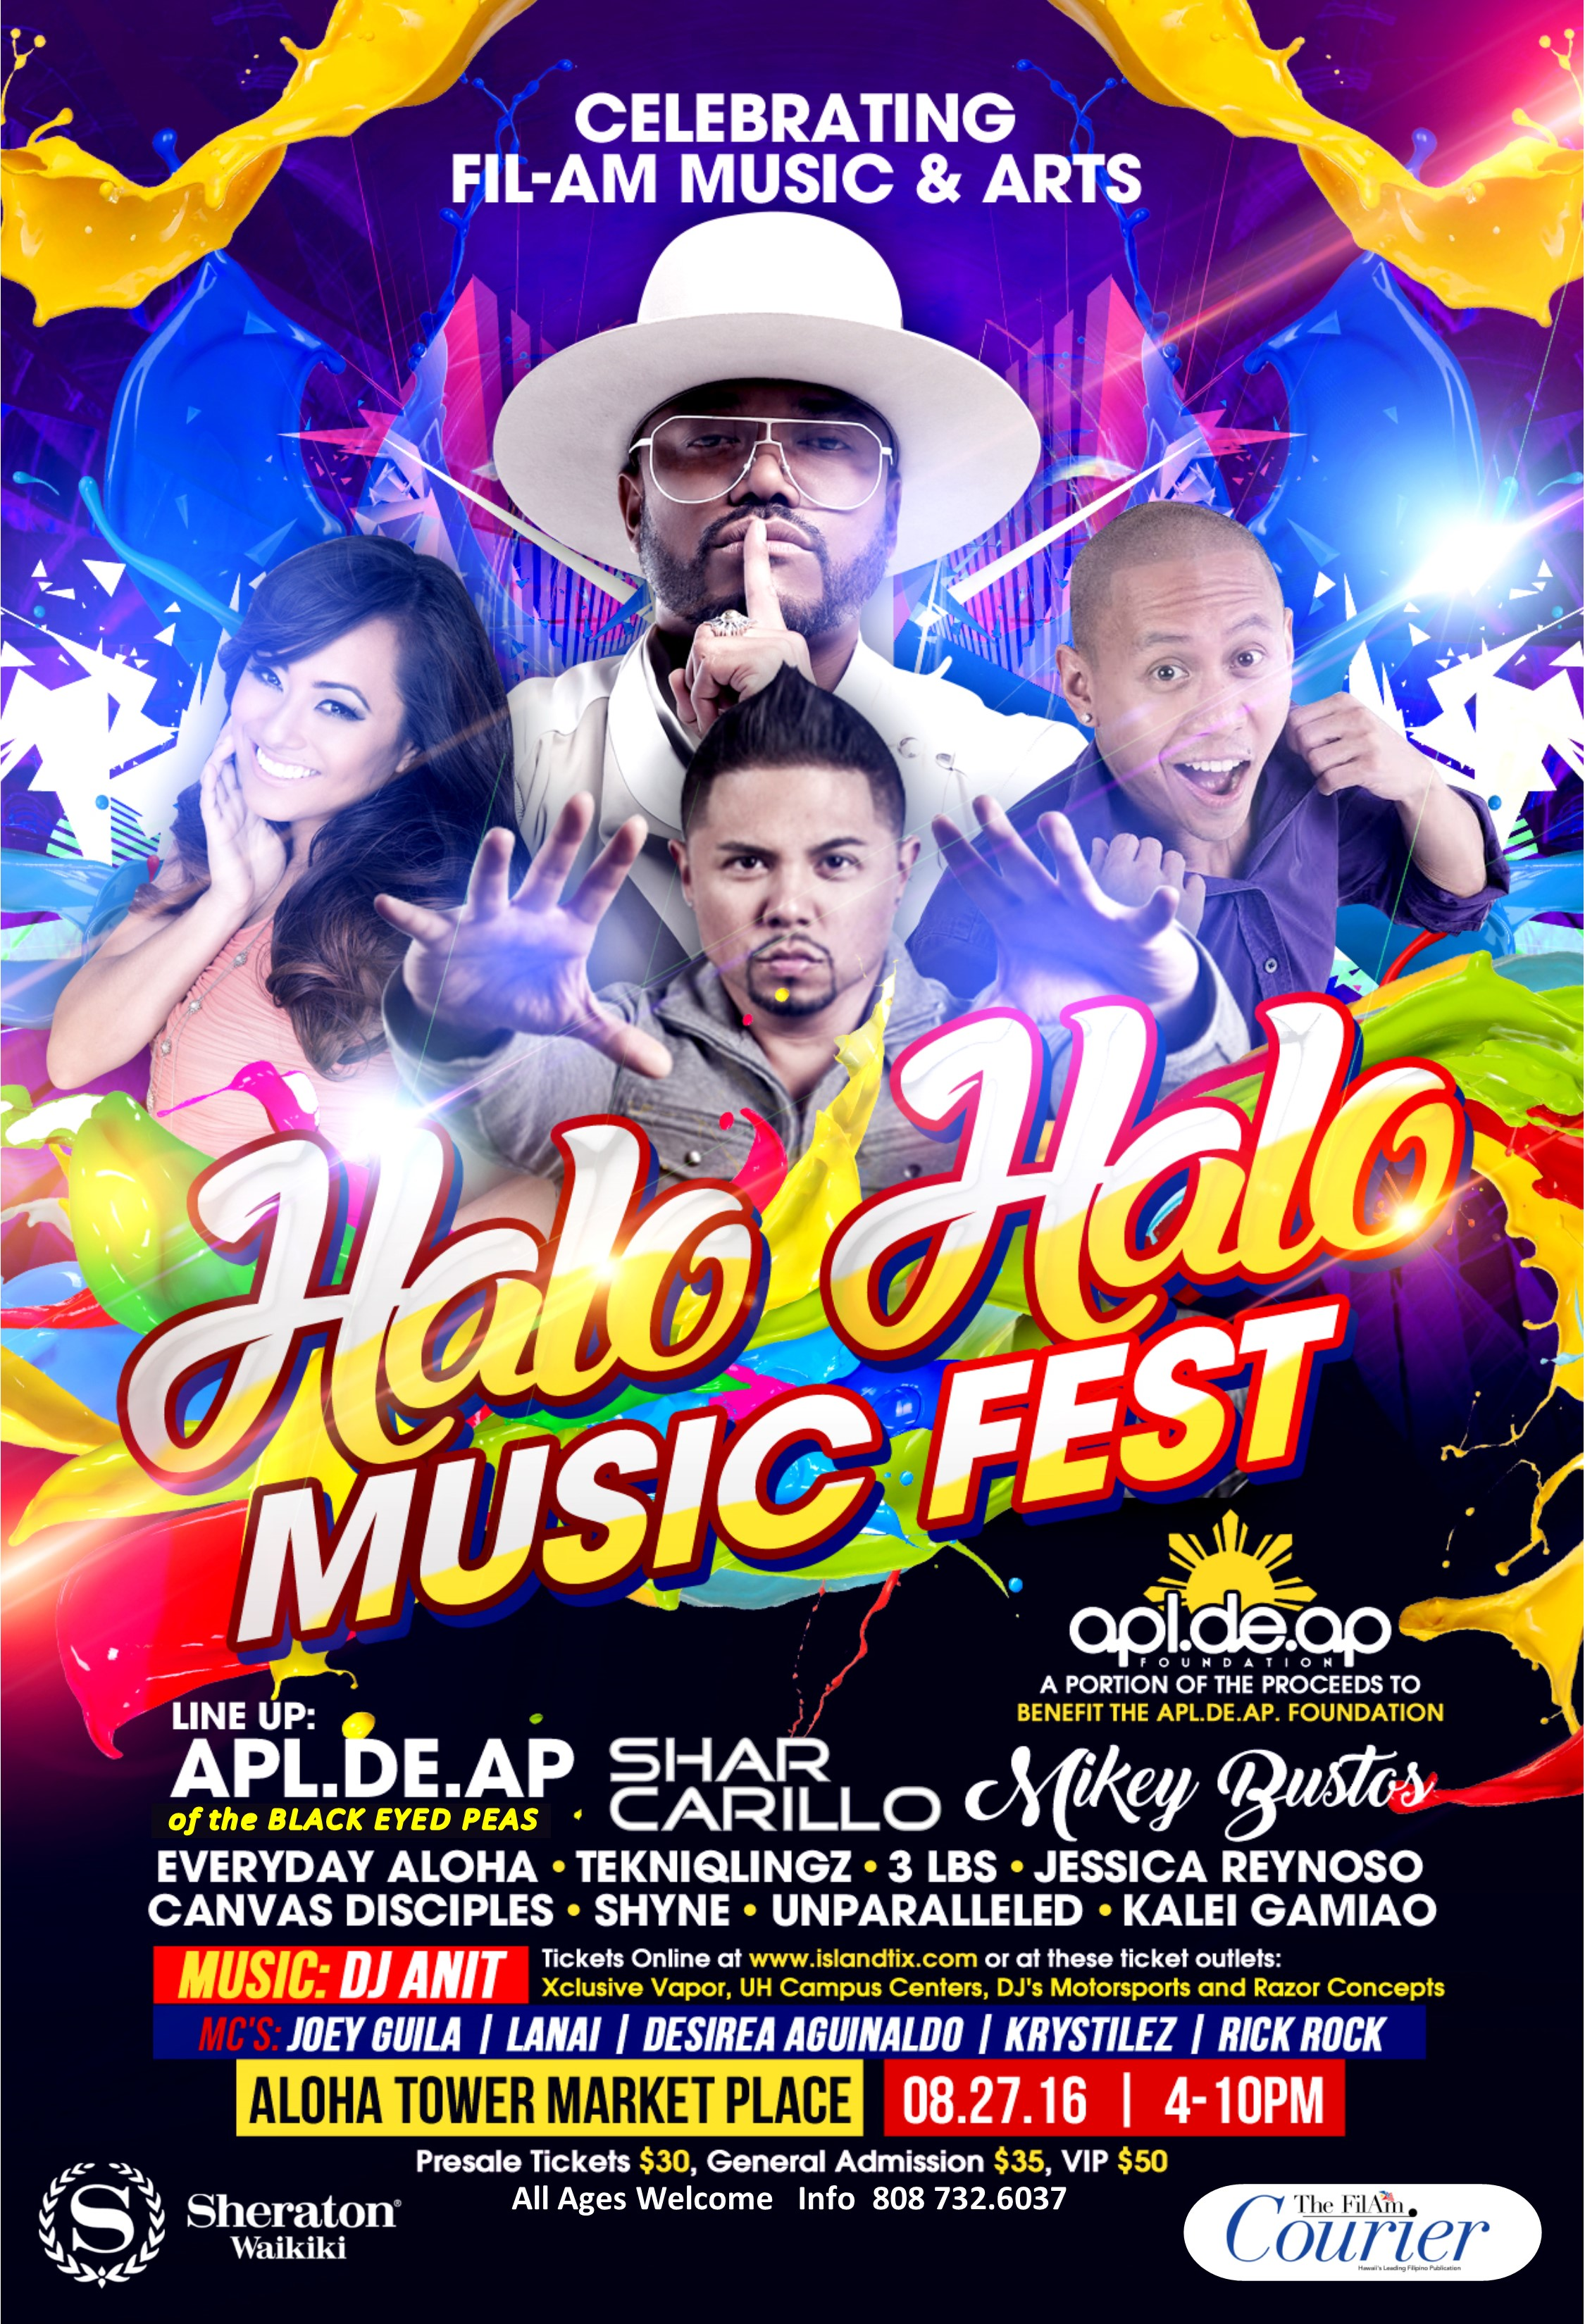 Halo Halo Music Fest Poster